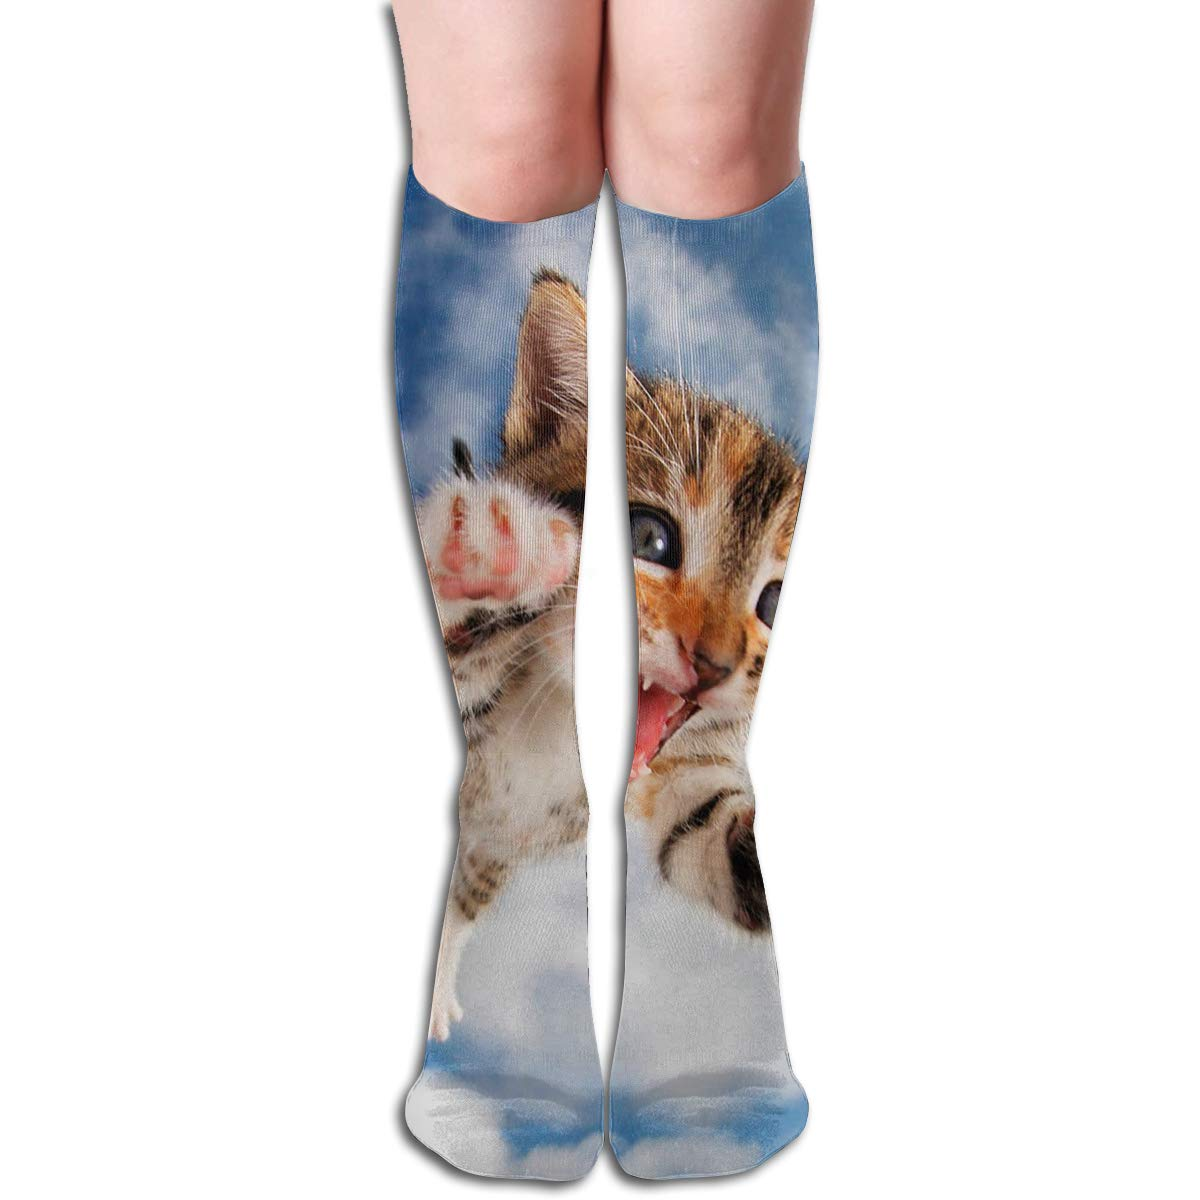 Women Socks Mid-Calf Abstract Music Notes Winter Stylish For Festive